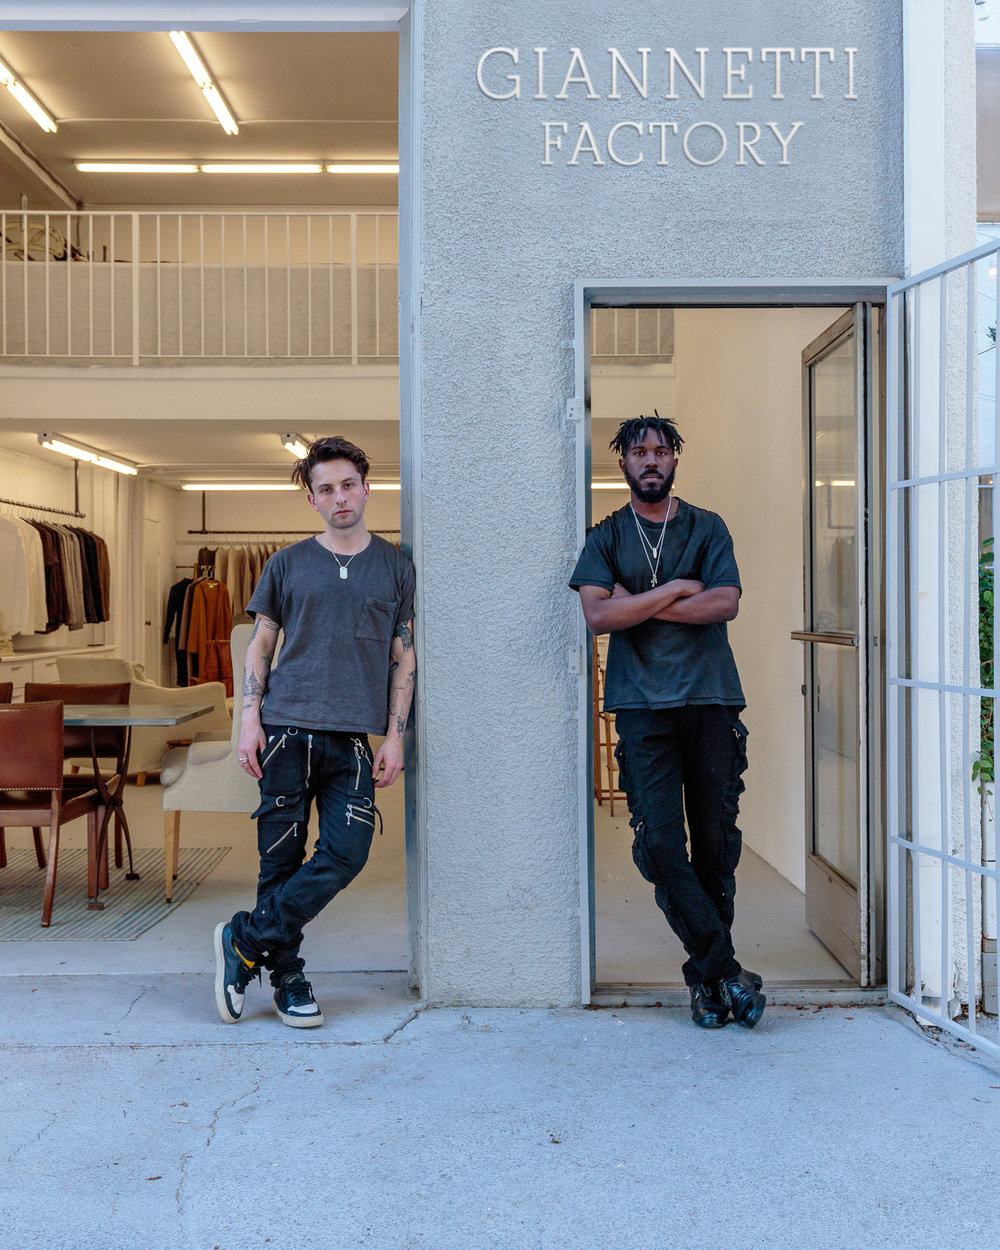 BACKTAB LOS ANGELES - Together, Garrett Wilson and Charlie Giannetti operate Backtab LA which functions as the design and consulting group at Giannetti Factory.